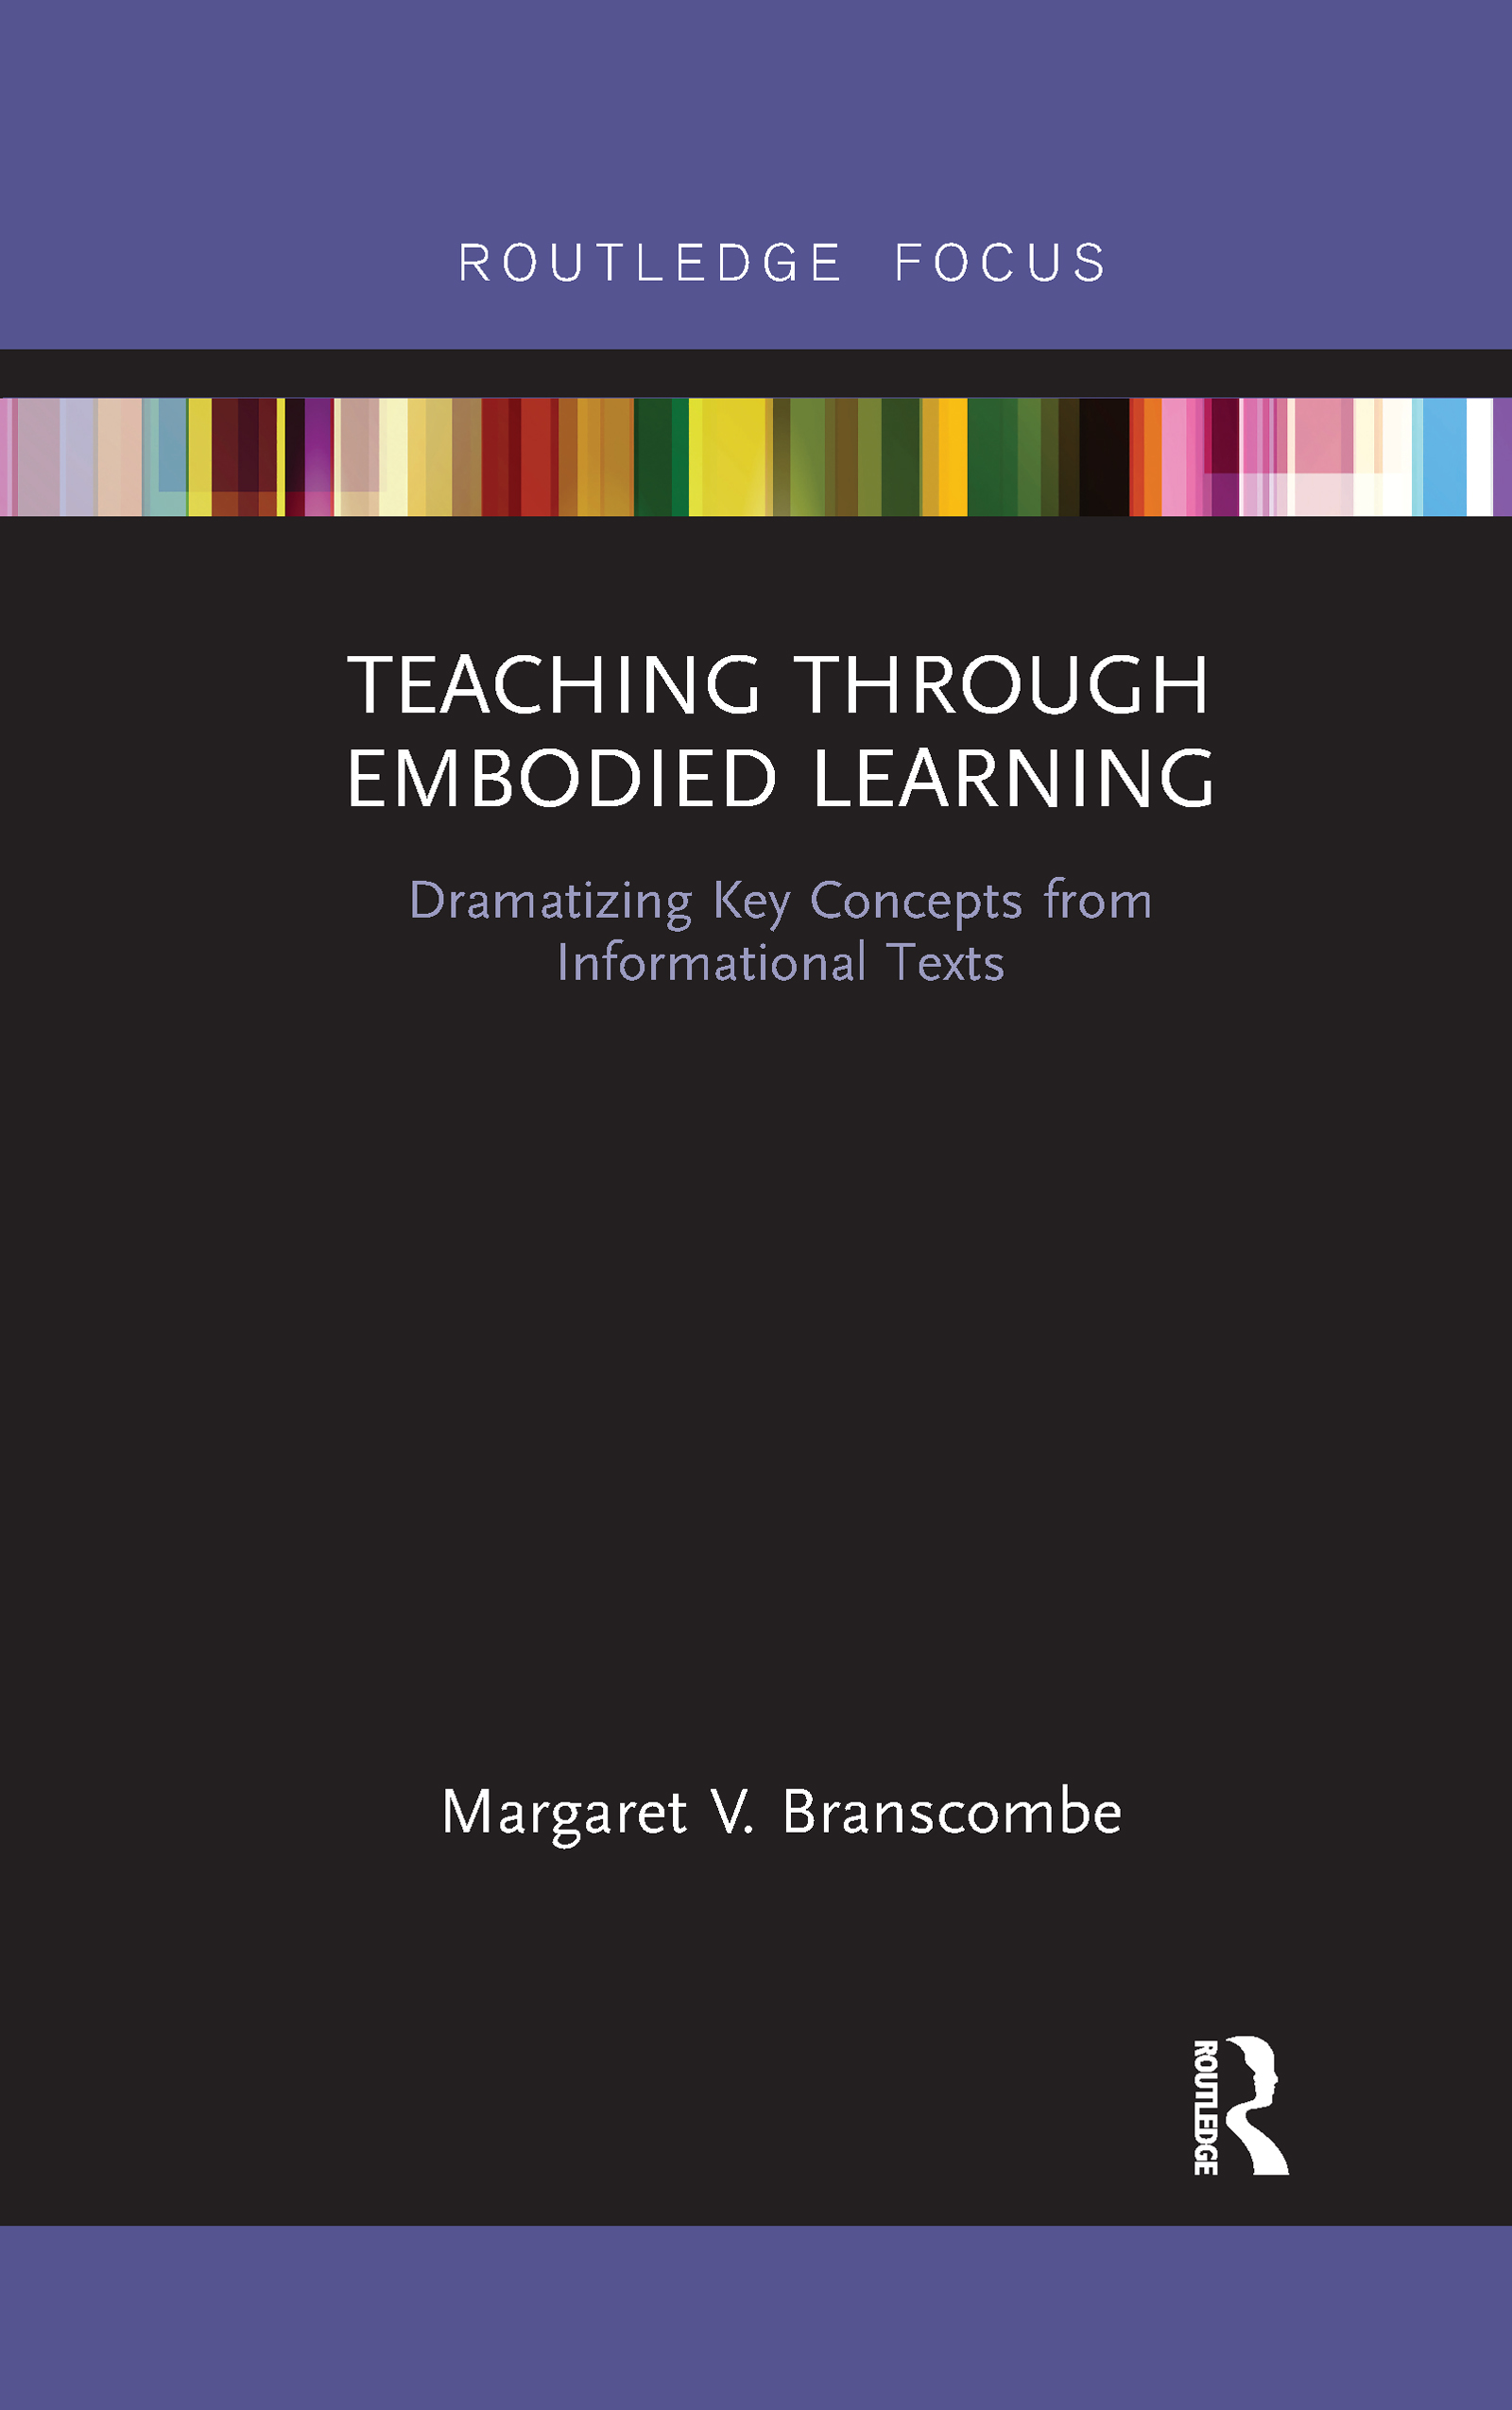 Teaching Through Embodied Learning